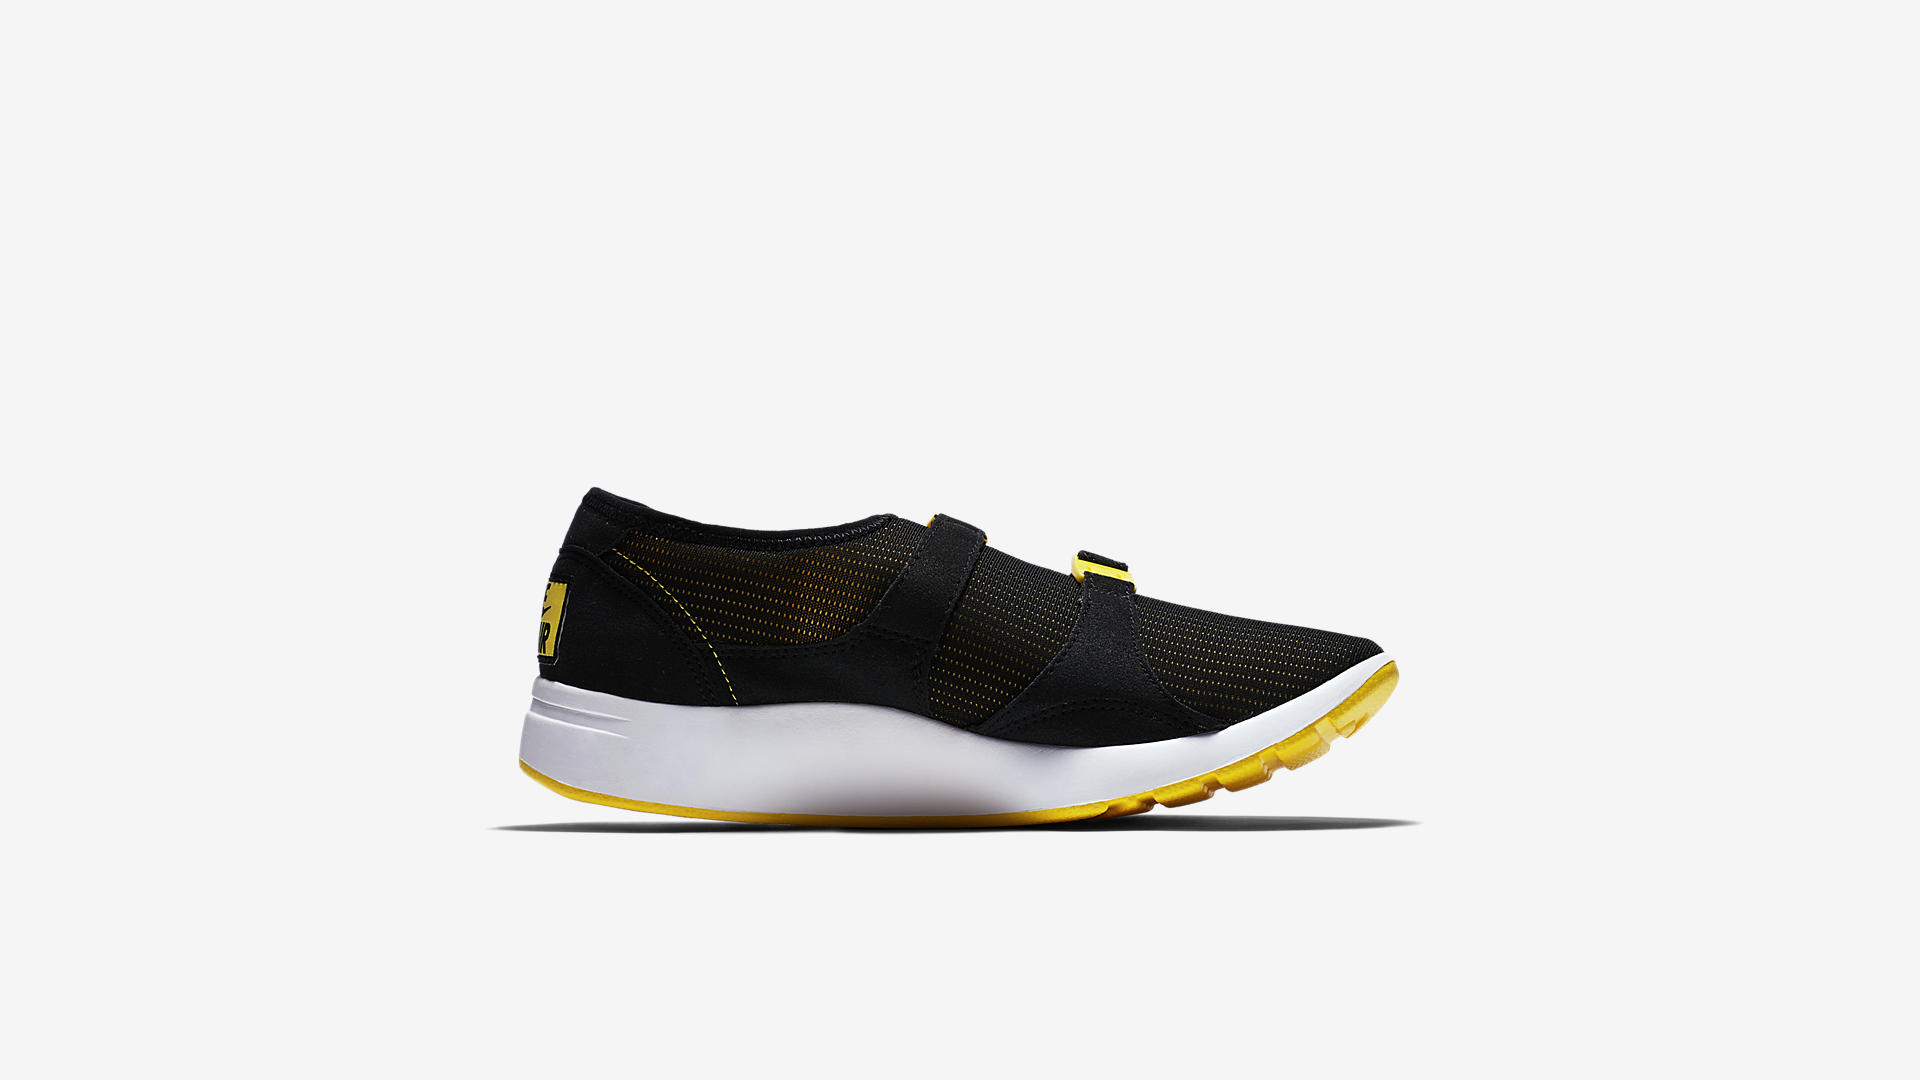 Nike Air Sock Racer OG Black Tour Yellow 875837 001 4